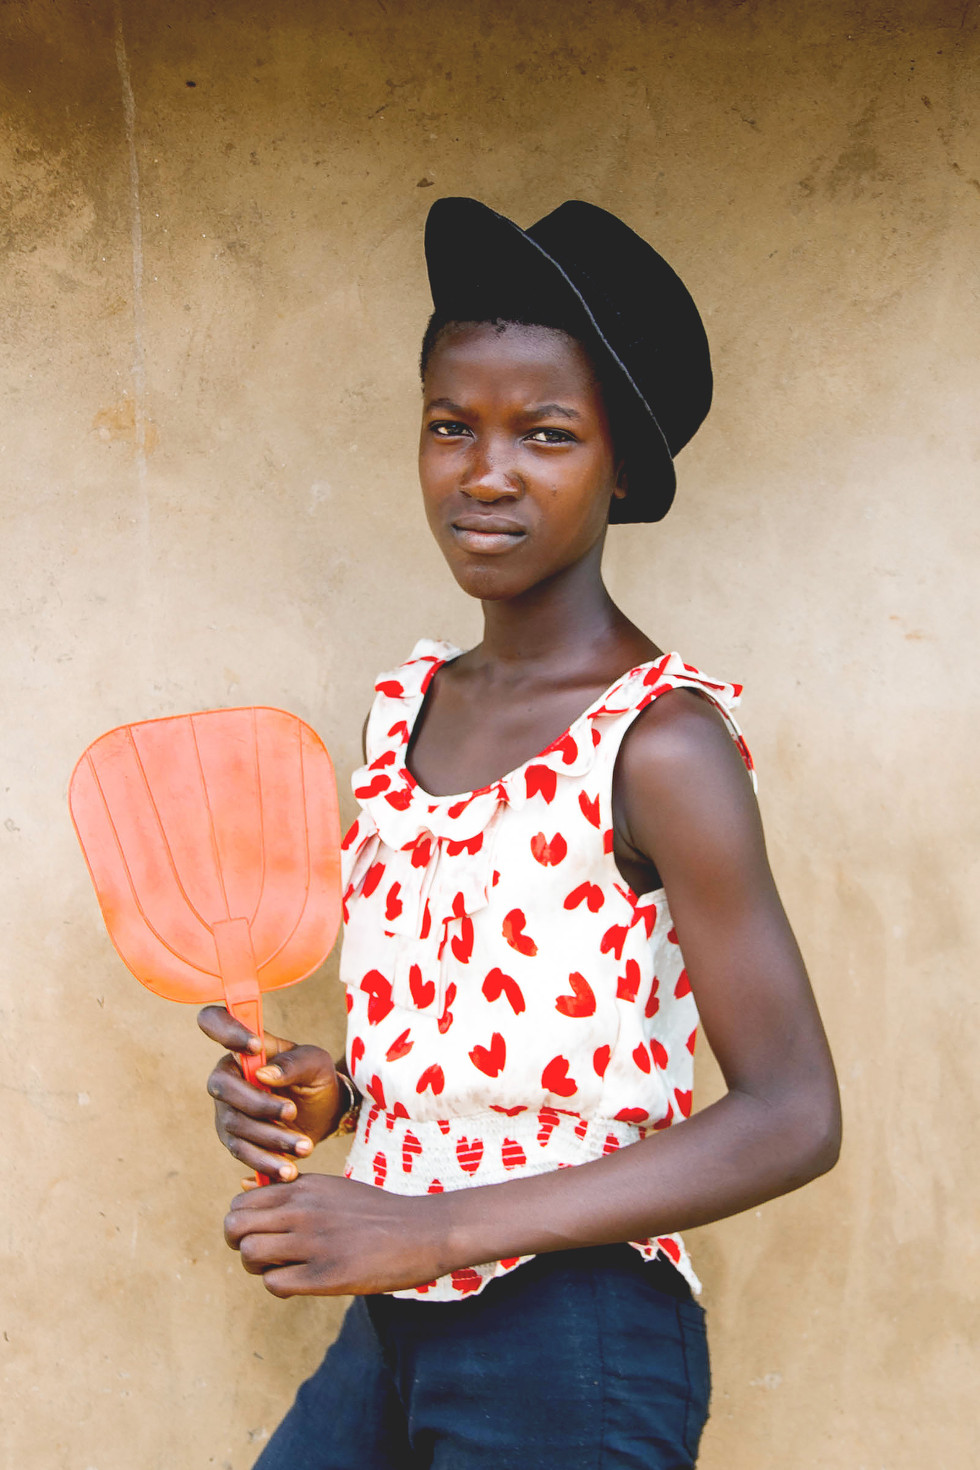 IMAGE II. MILLENNIAL GENERATION. OMAME, meaning young girl in her native tribal language. Glaring lies the effect technology and the internet has on the millennial generation throughout the African Contient. The traditional village upbringing has changed drastically post-colonization, access to higher education and advancement in technology. Young African's have found empowerment in this new era. Many challenging the negative narrative depiction of their Continent. A new movement, new narrative, new voices are emerging as young African's share positive perspectives of their home.